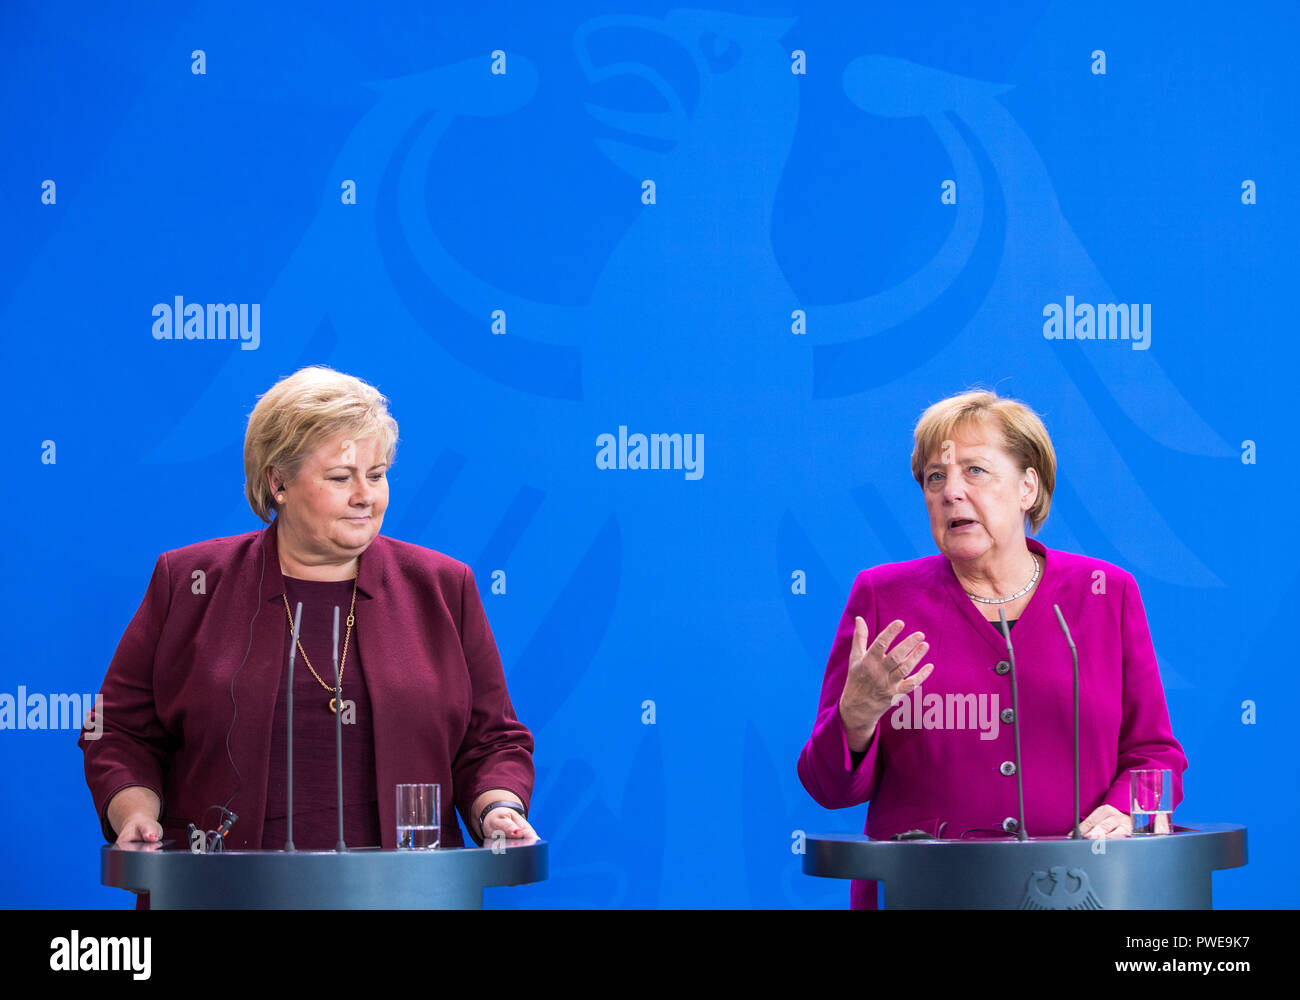 Berlin, Germany. 16 October 2018, Berlin: Federal Chancellor Angela Merkel (CDU, r) welcomes Erna Solberg, Prime Minister of Norway, to the Chancellery. Solberg will then give a speech at the Körber Foundation on the priorities of Norwegian foreign policy. Photo: Jens Büttner/dpa-Zentralbild/dpa Credit: dpa picture alliance/Alamy Live News - Stock Image